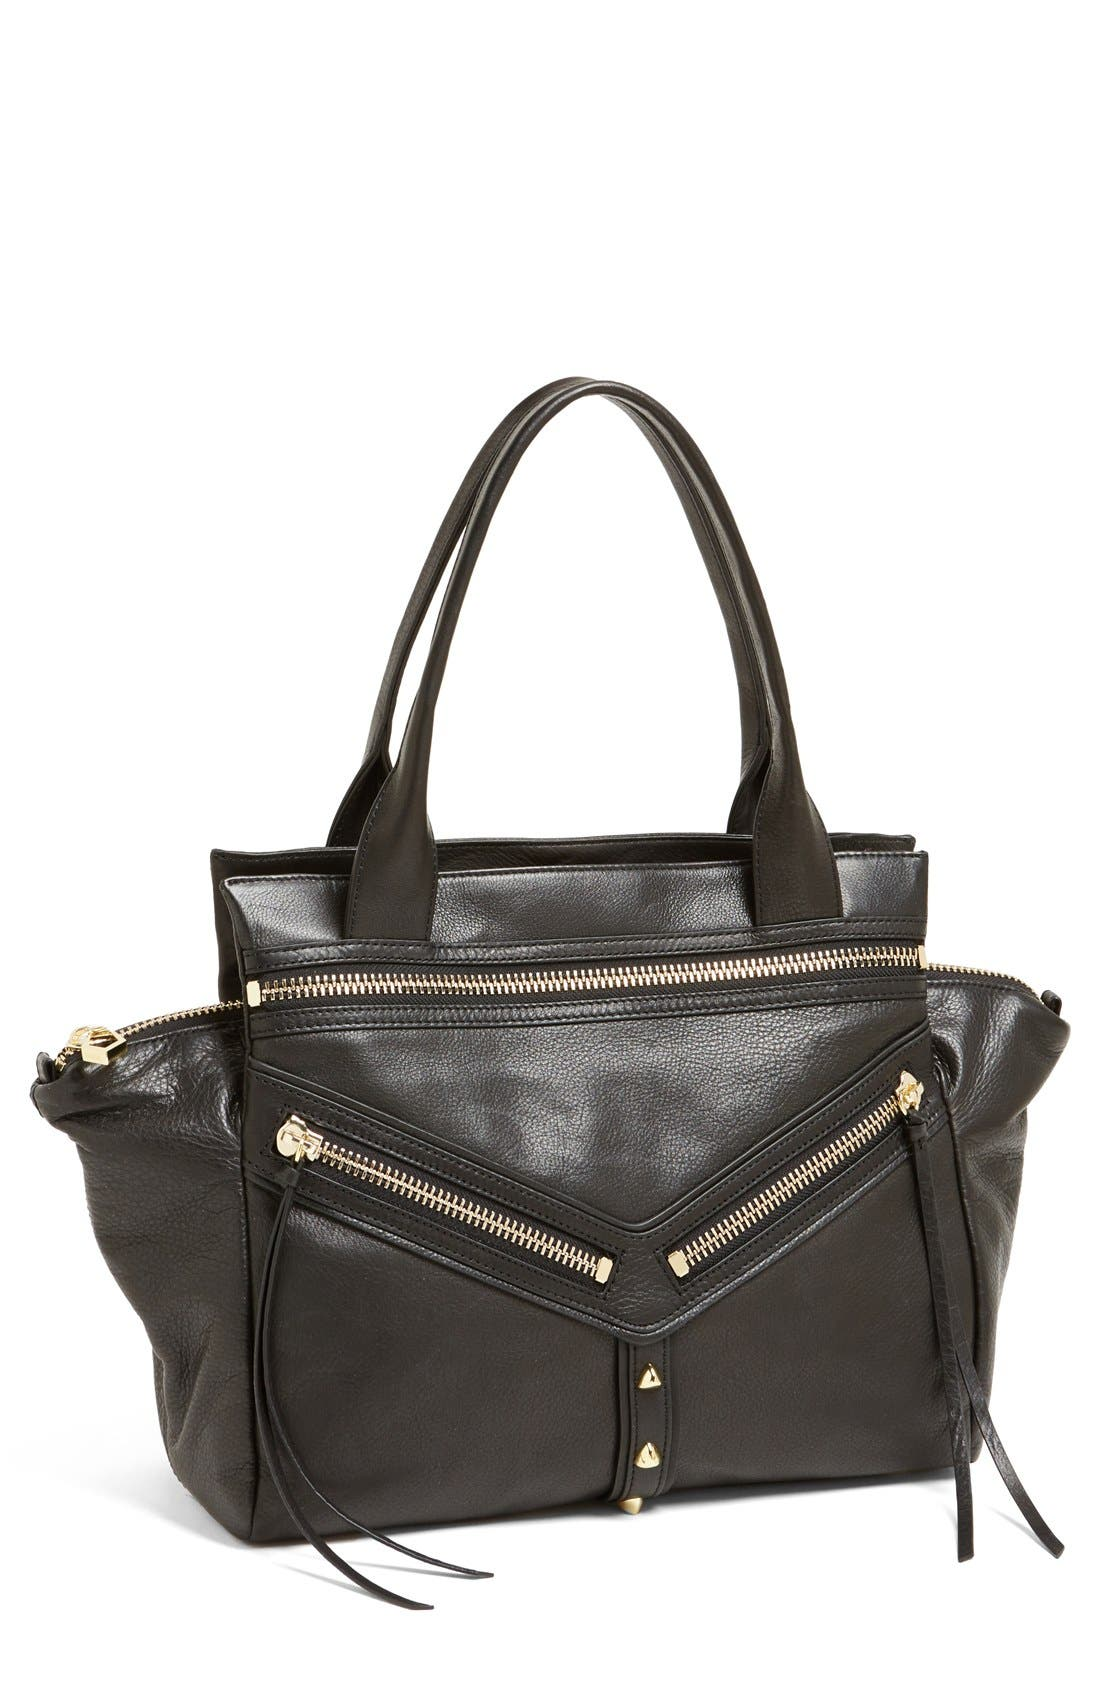 Alternate Image 1 Selected - Botkier 'Legacy' Satchel